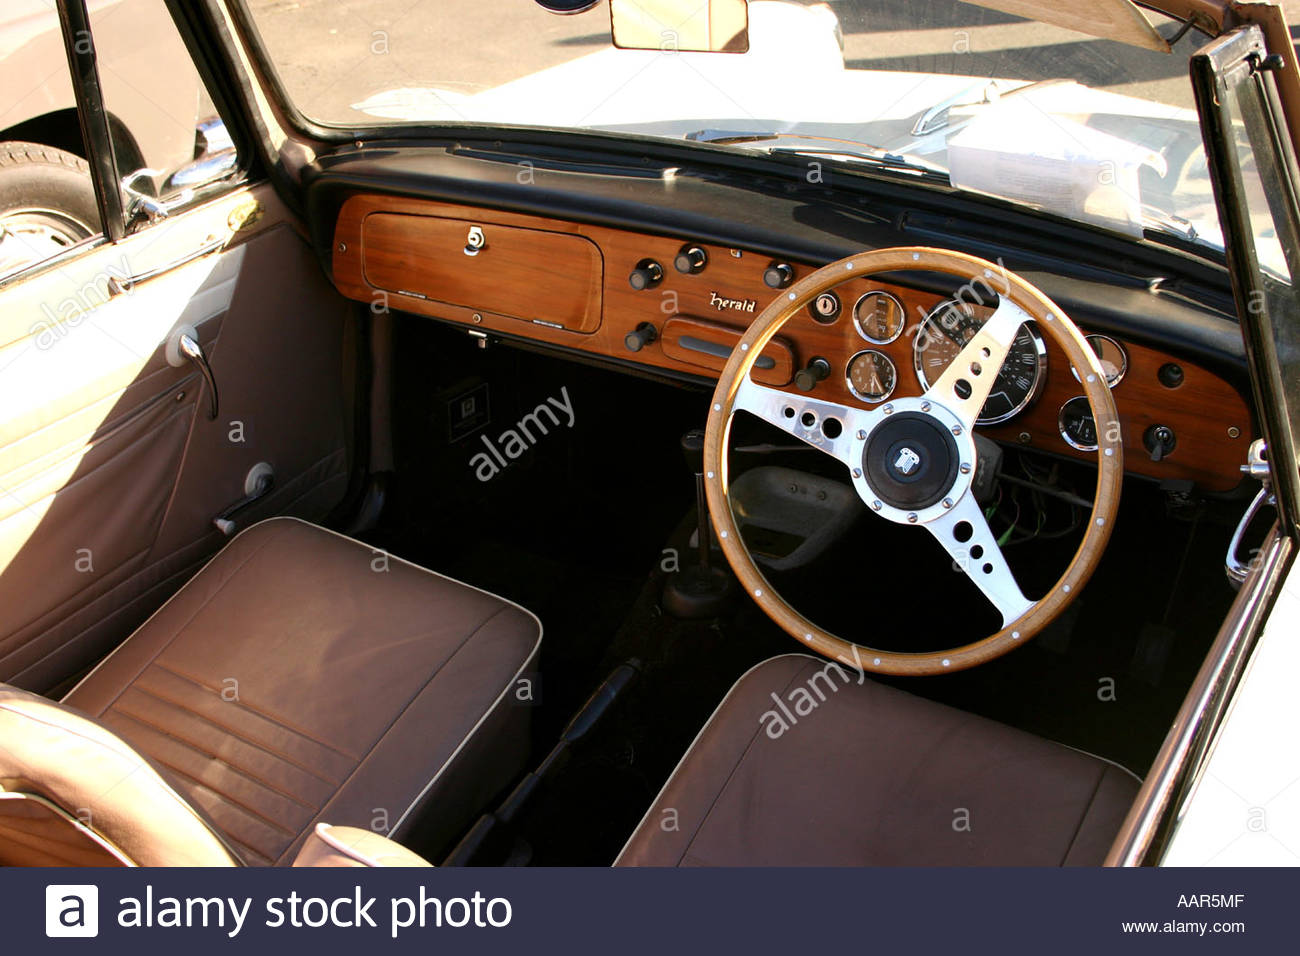 1960 triumph herald convertable interior classic car on display at stock photo 7249678 alamy. Black Bedroom Furniture Sets. Home Design Ideas